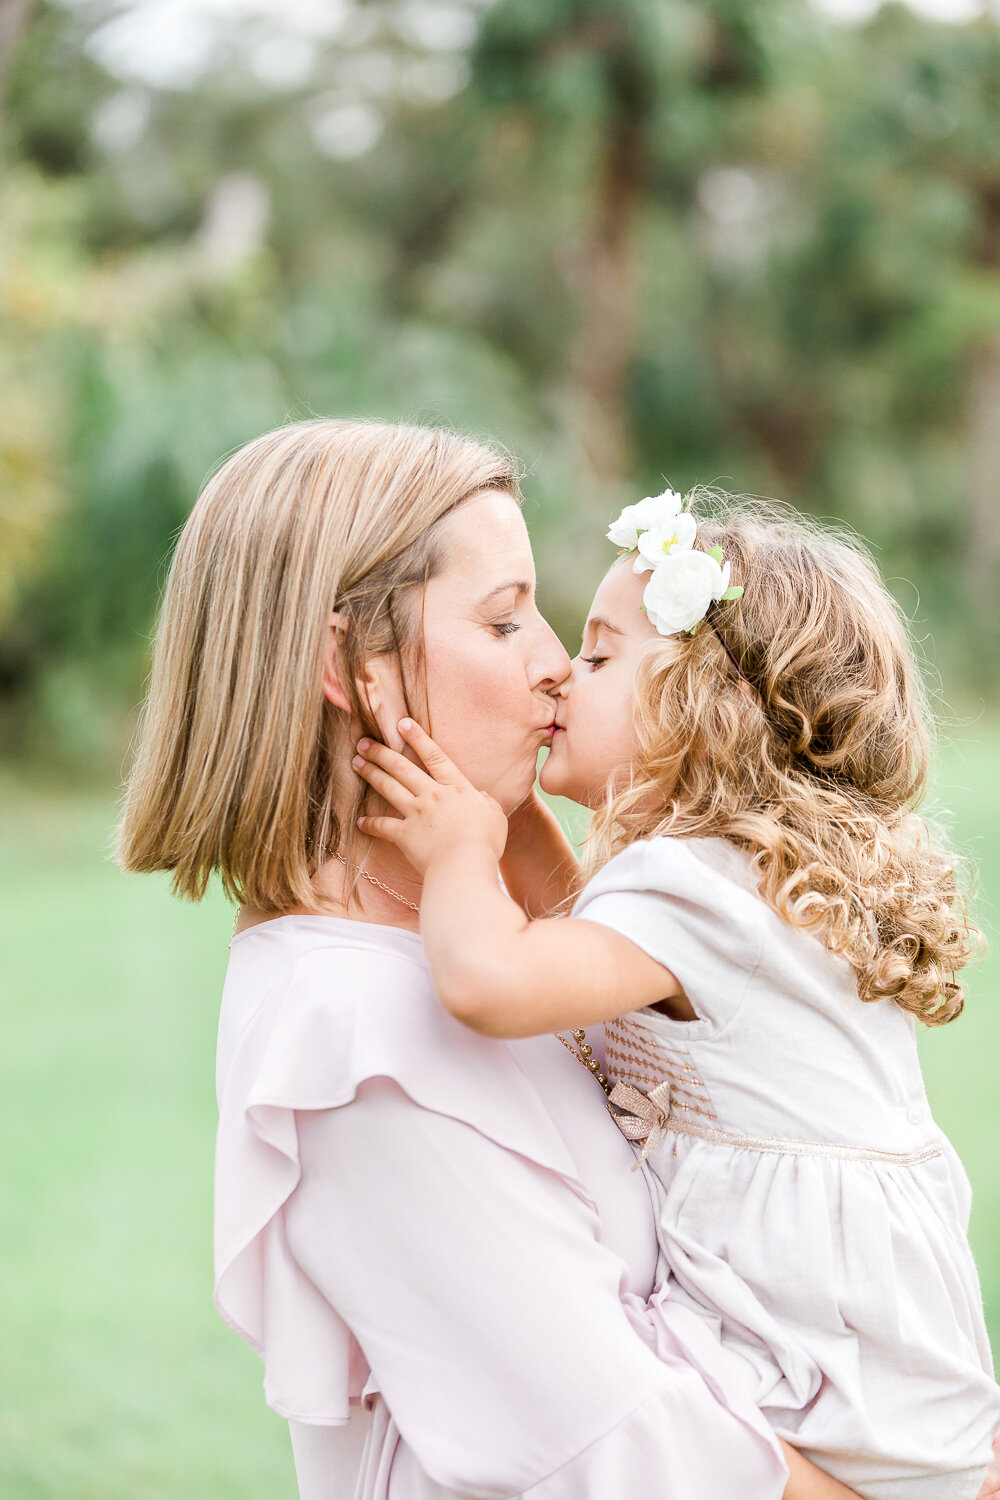 mommy-daughter picture inspiration in Nocatee-s 20 mile park